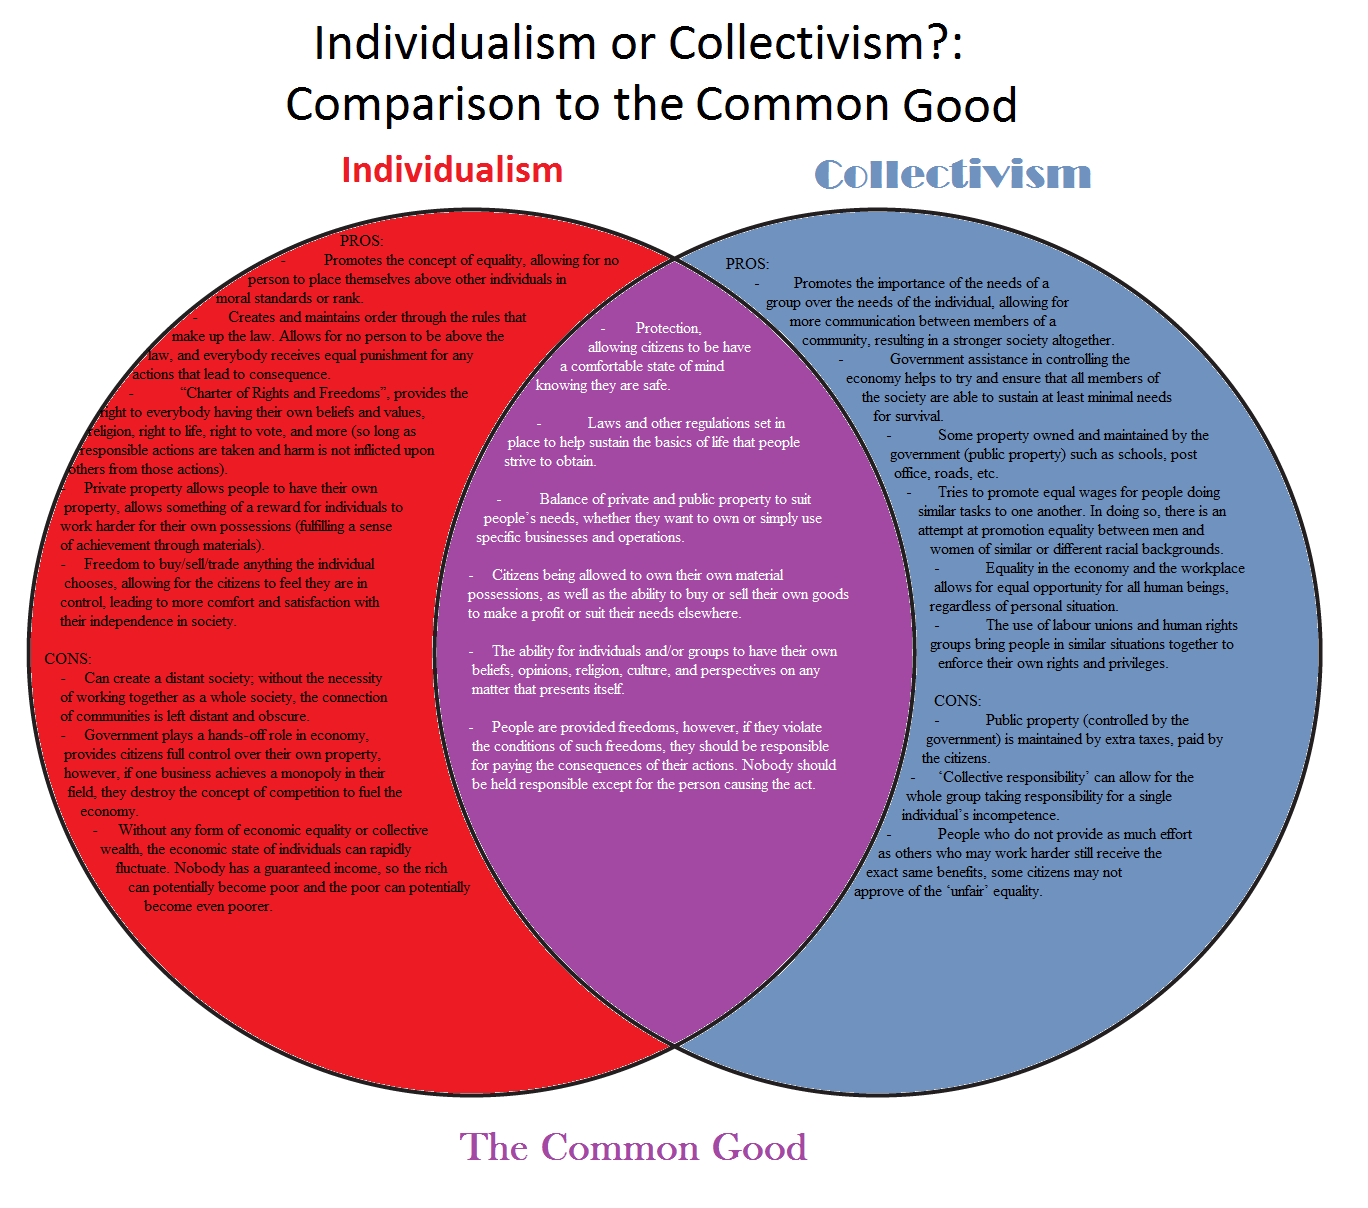 communism vs socialism venn diagram class for railway reservation system collectivism individualism culture quotes quotesgram